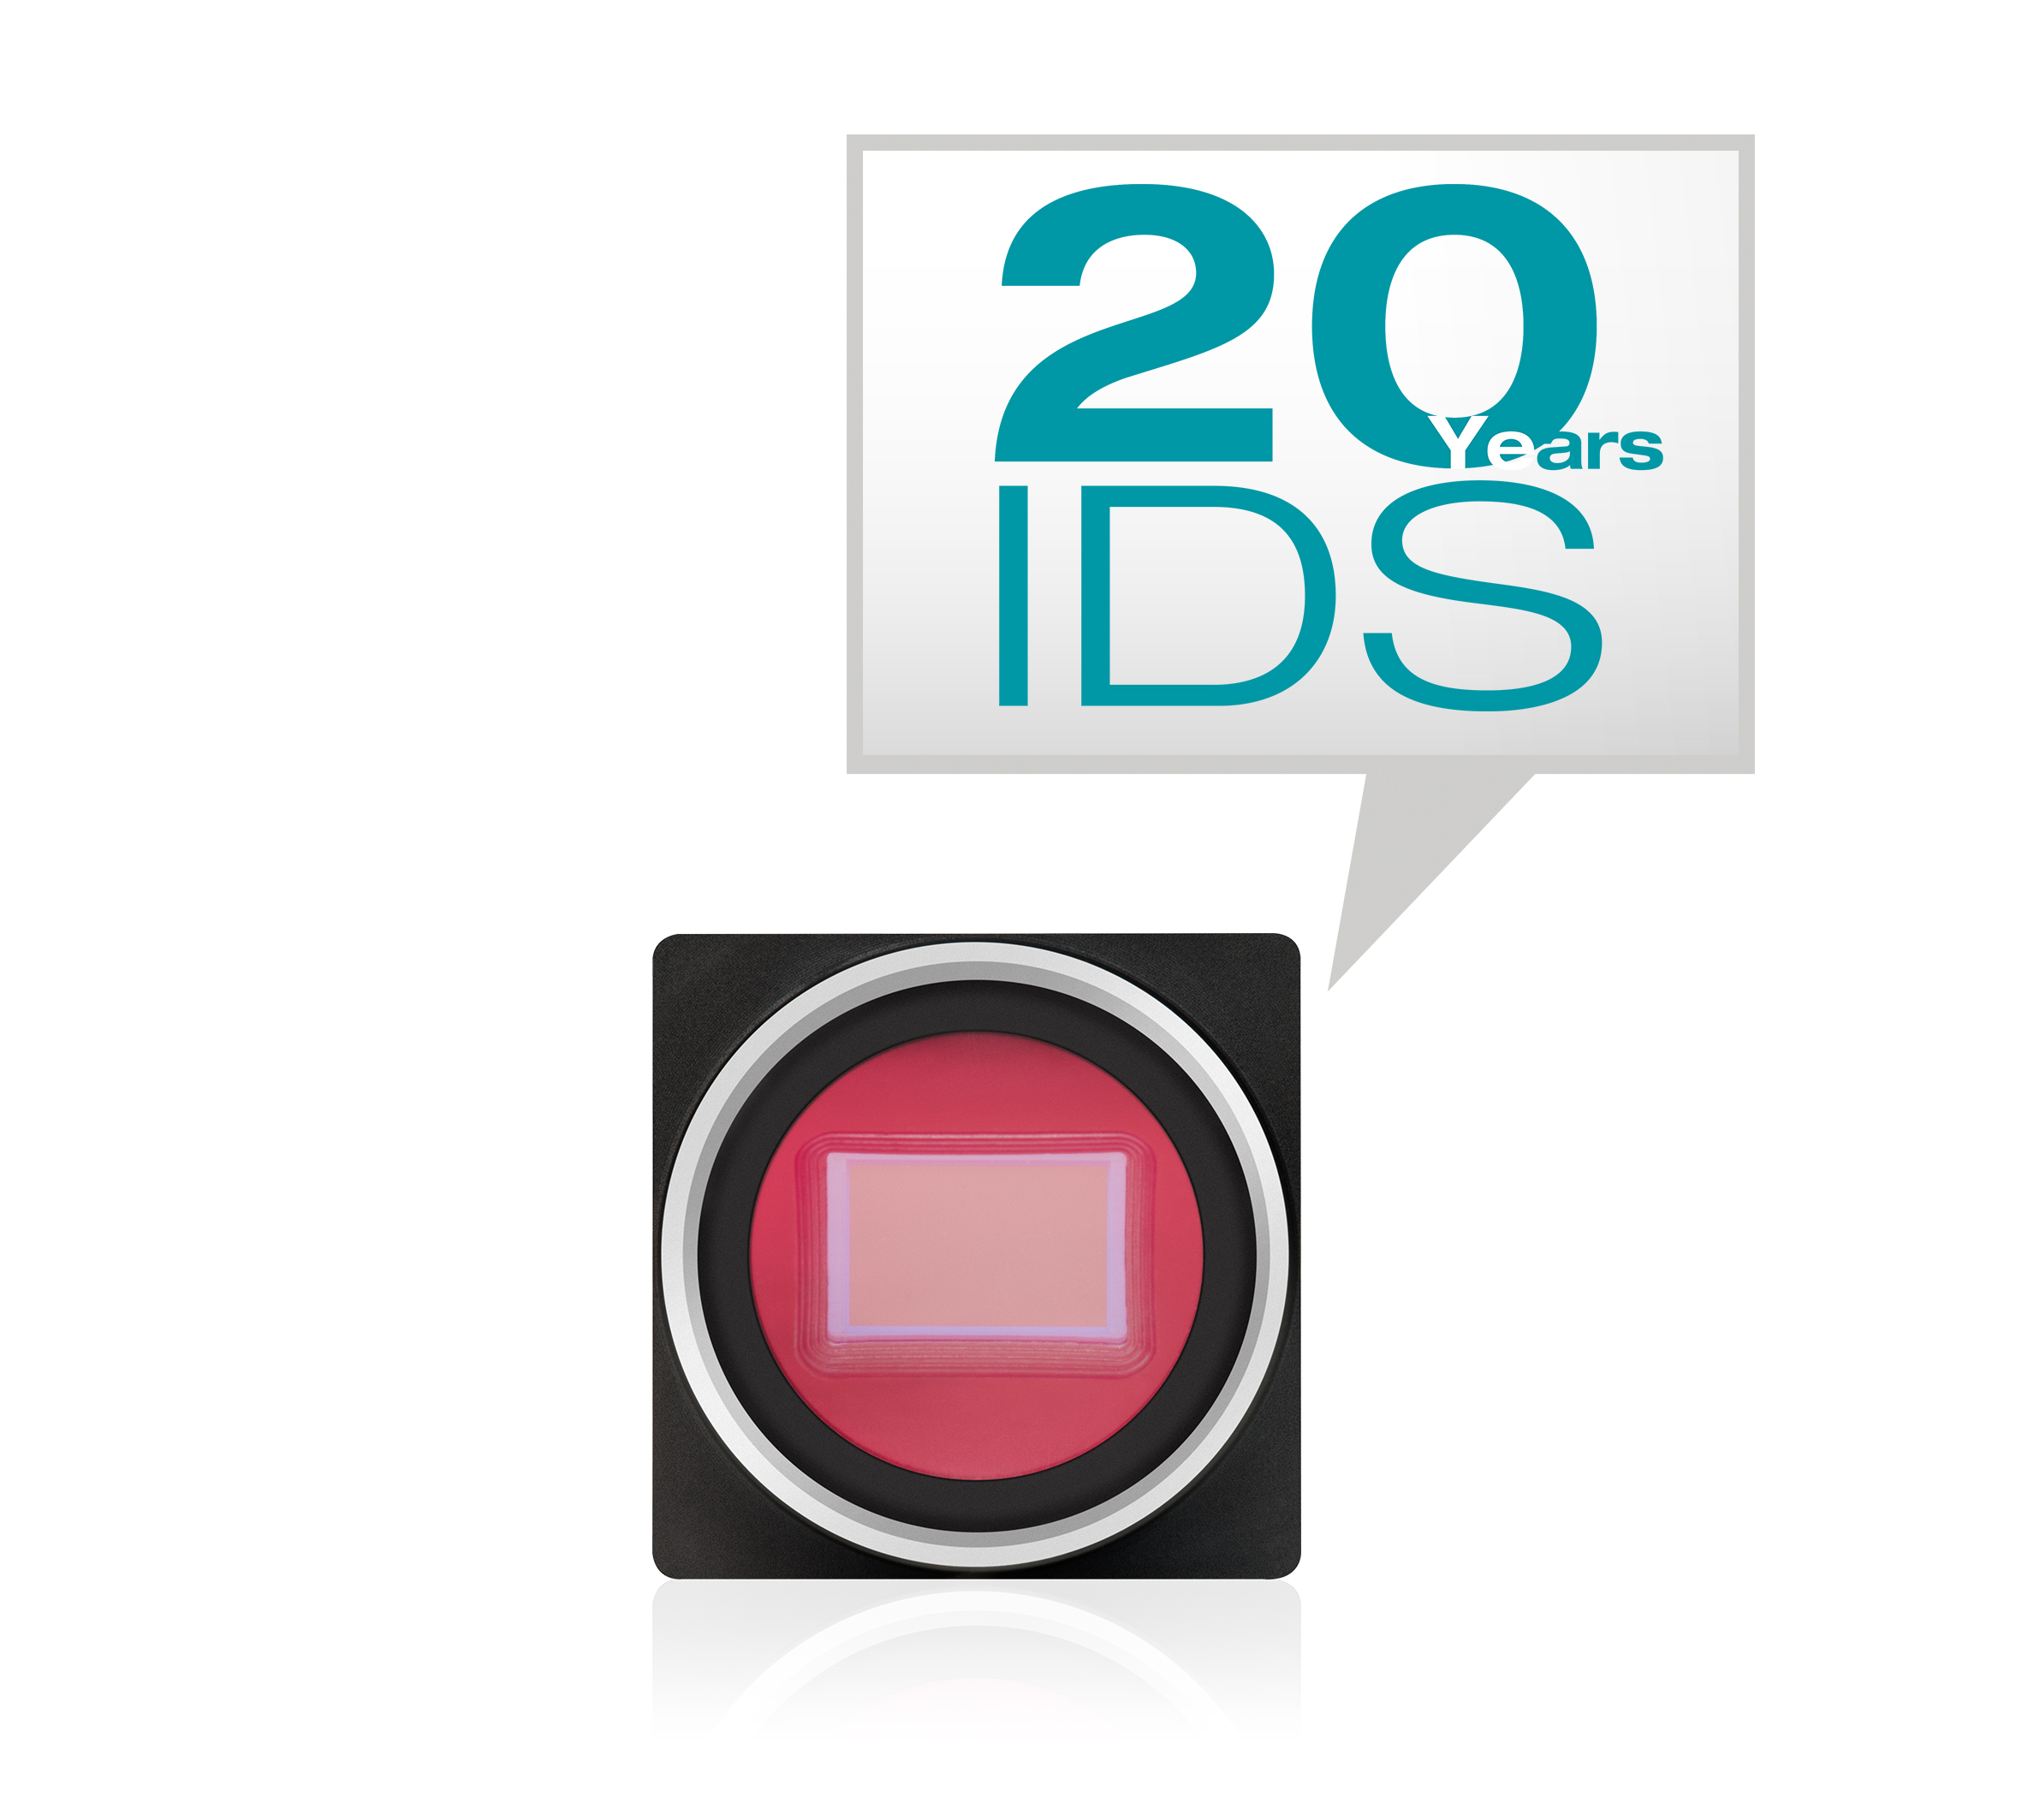 ids industrial machine vision cameras 20 years speech bubble 300dpi